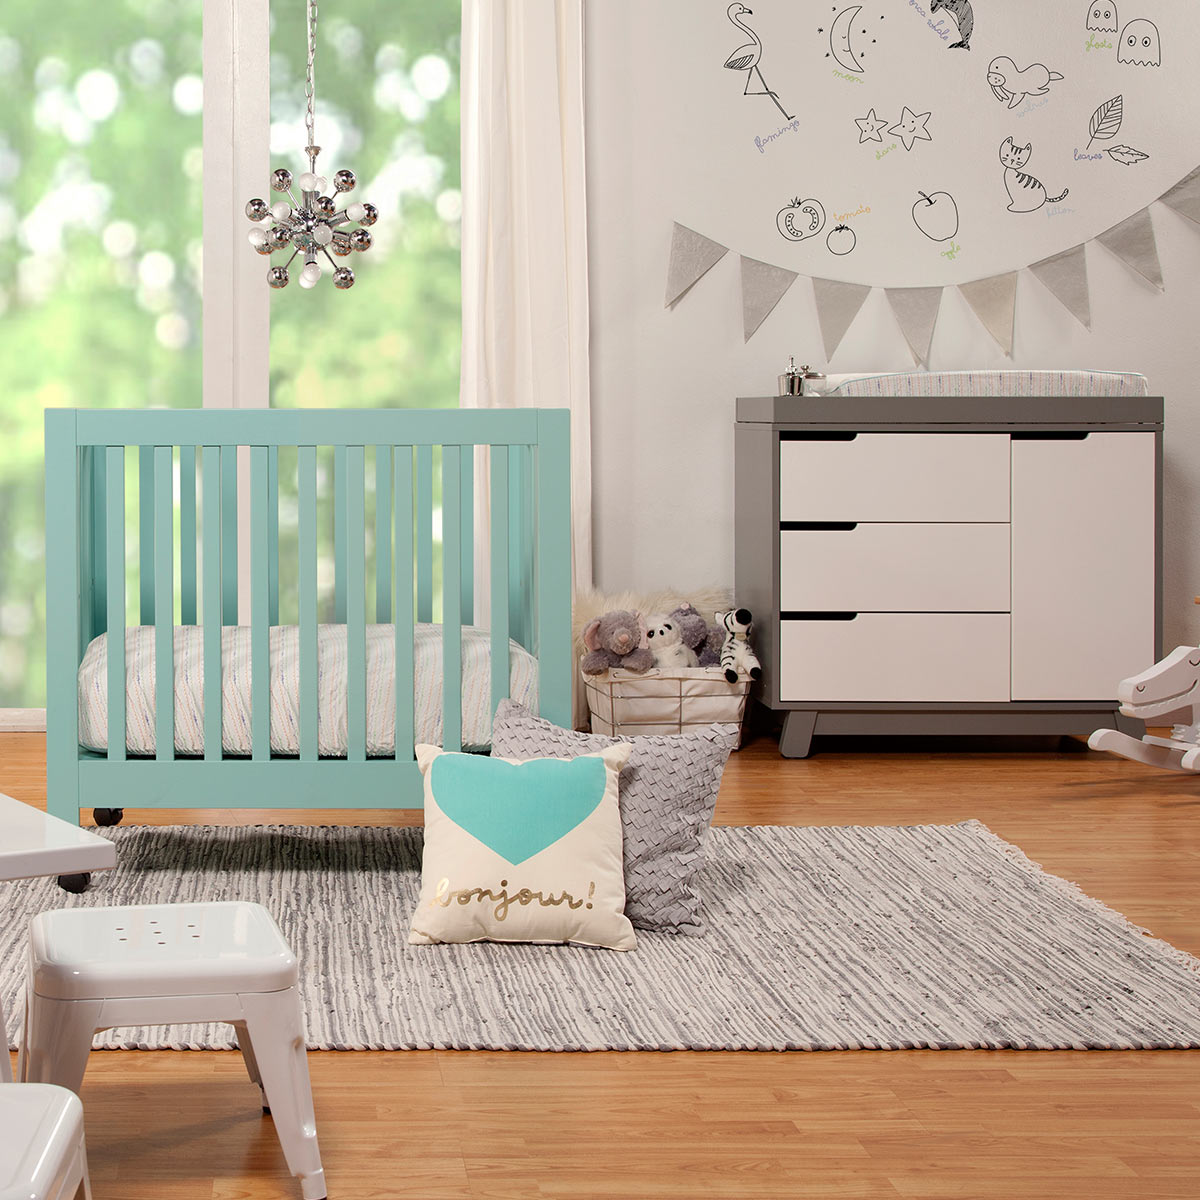 Babyletto 2 piece nursery set origami mini crib and hudson changer in lagoon free shipping